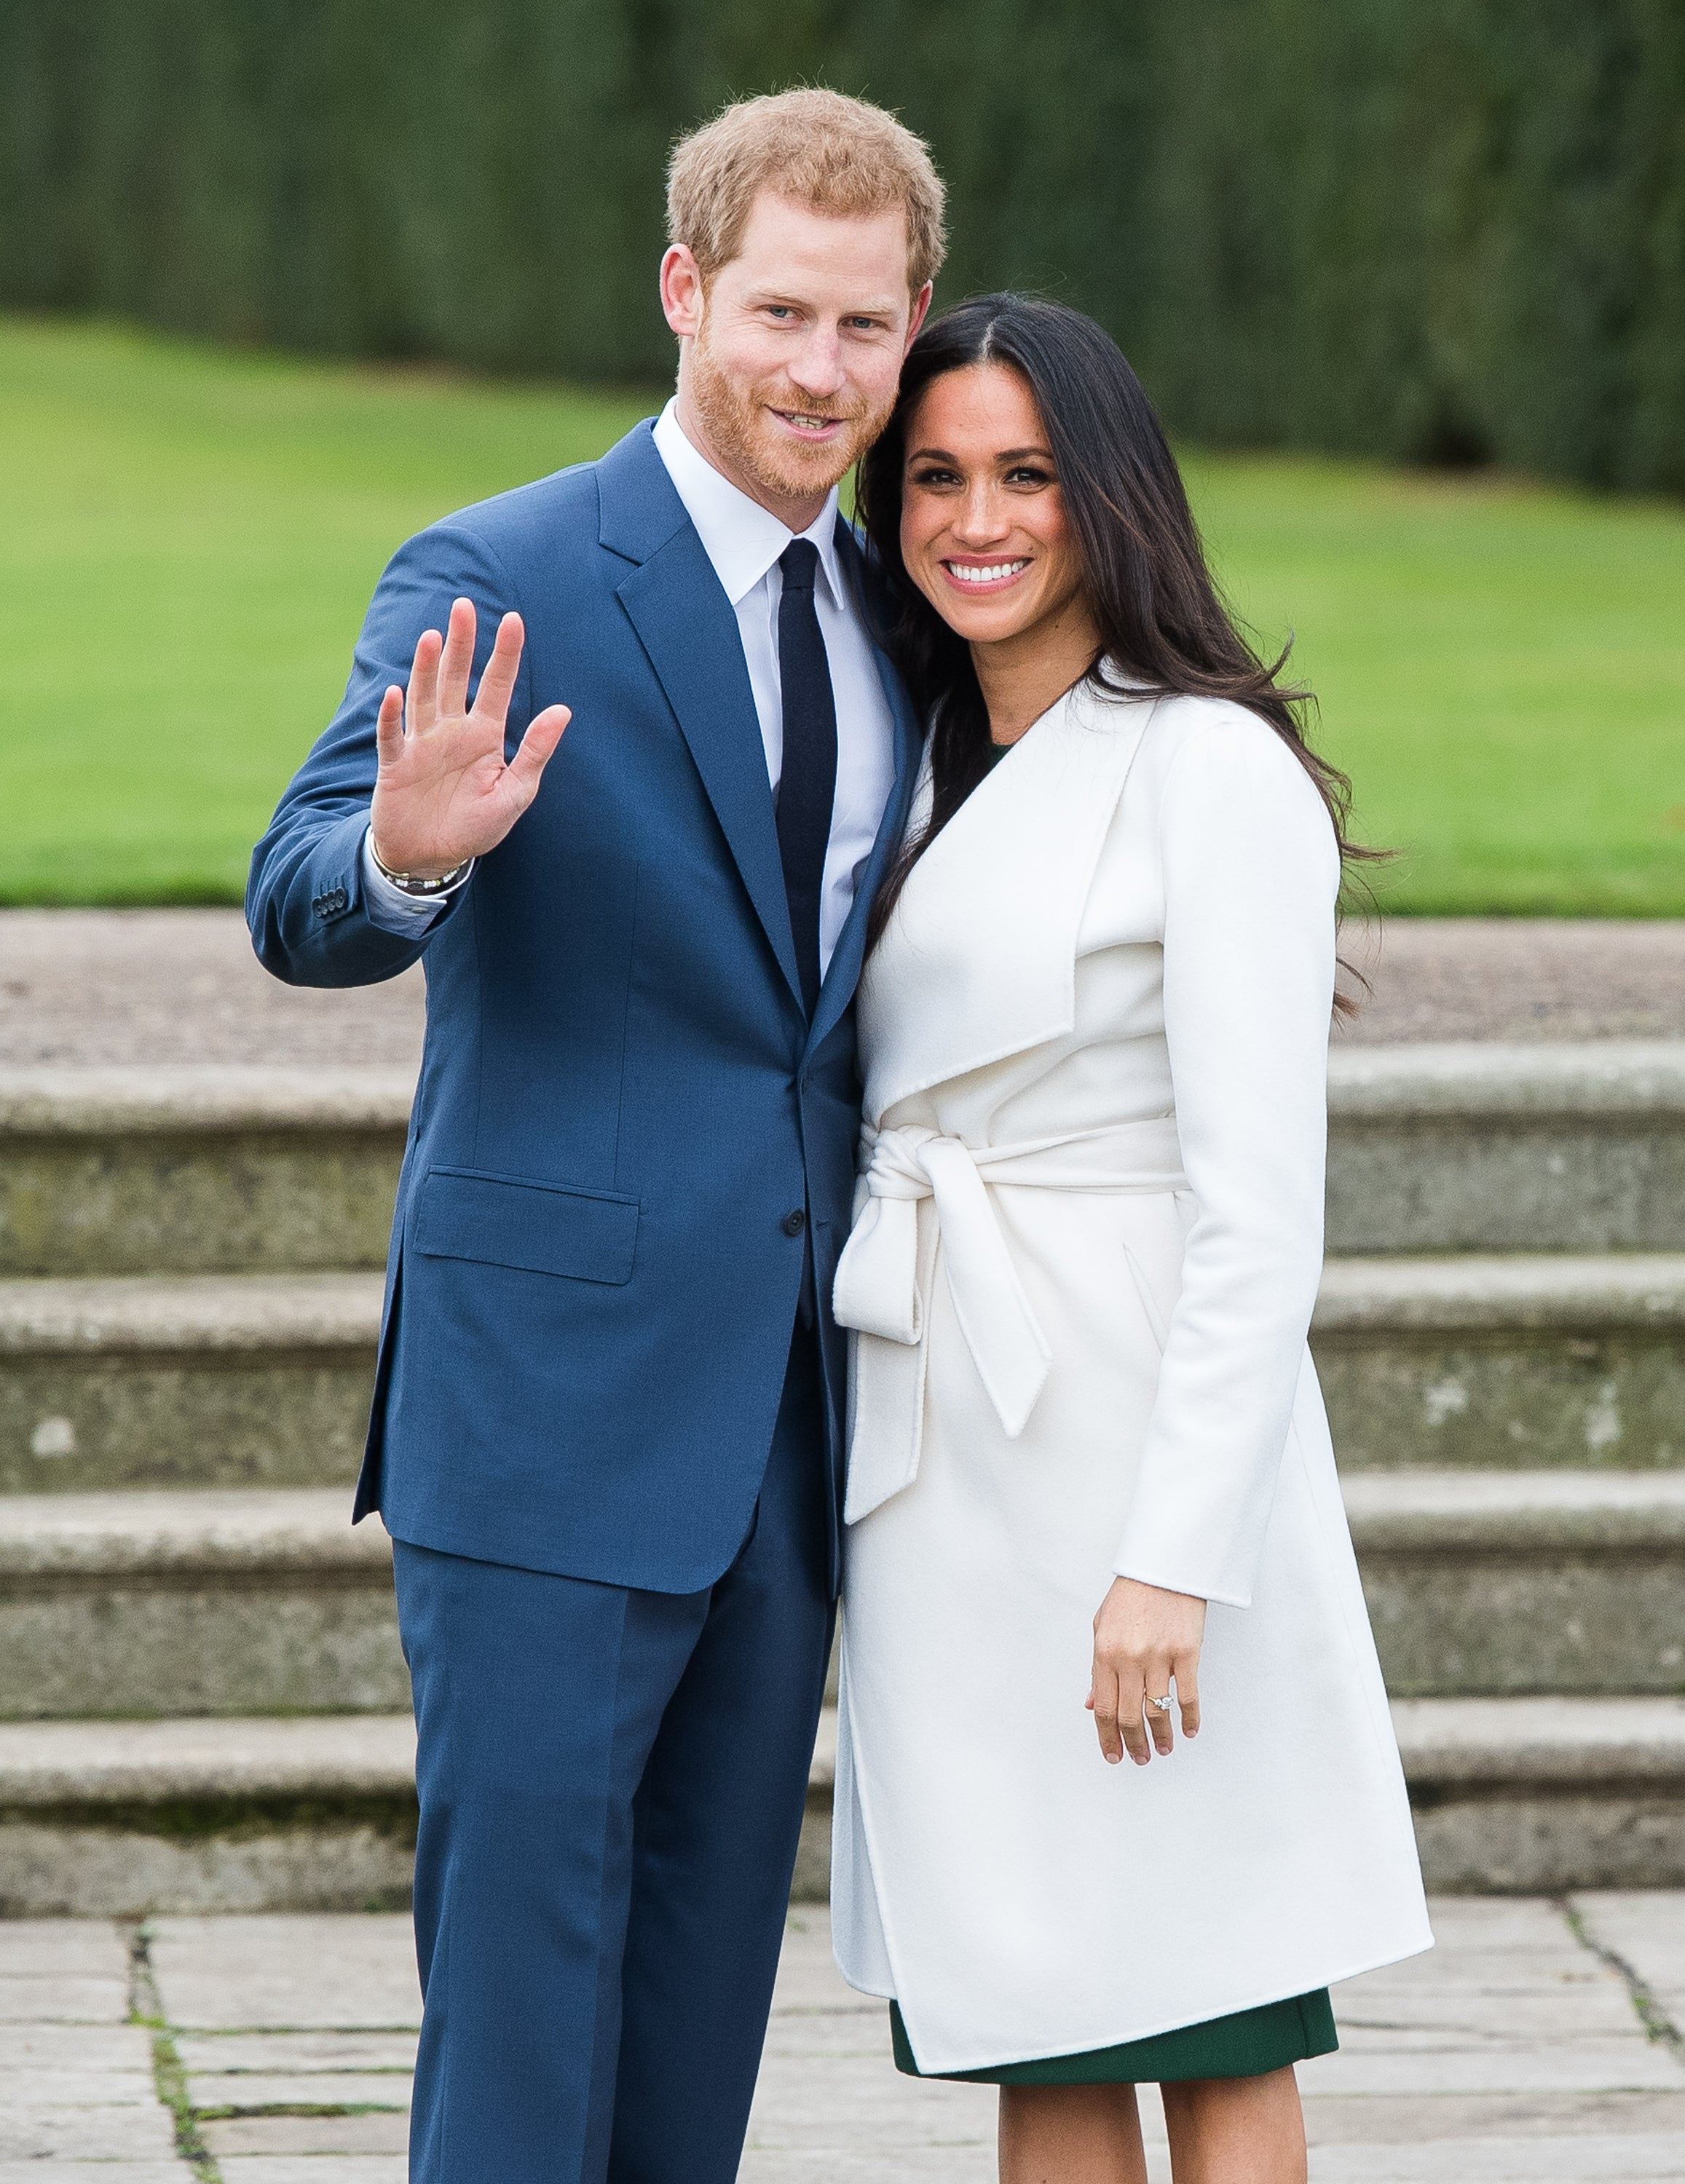 pictures Prince Harry and Meghan Markles Wedding Will Be Televised